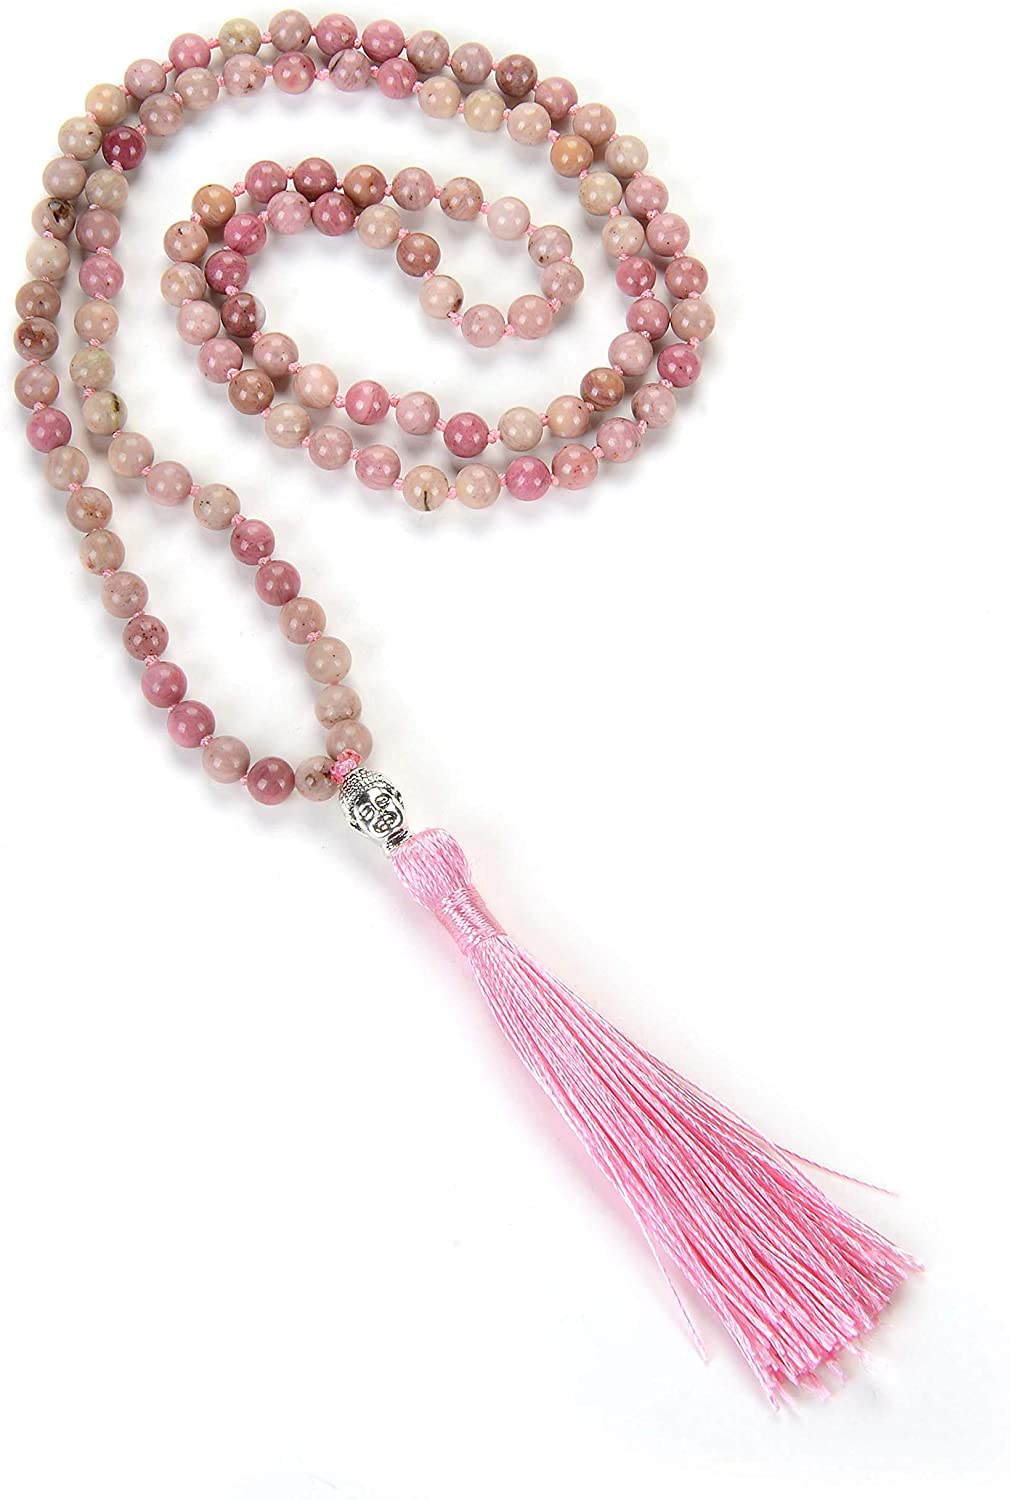 Self-Discovery 108 Mala Beads Yoga Necklace, Tassel Necklace Pink, Red, Brown, Blue, Black, White for Women